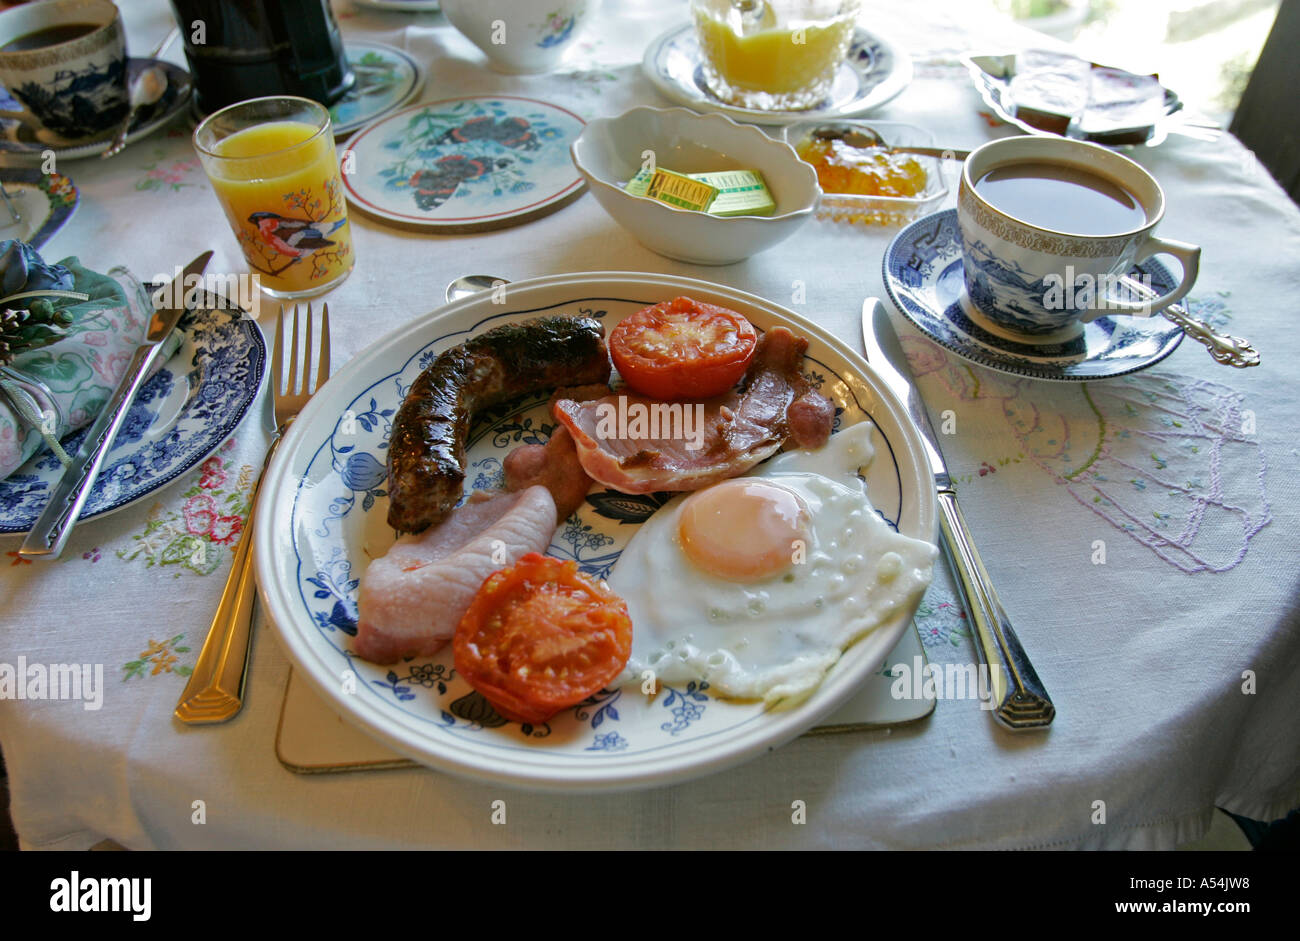 Crook, GBR, 21. Aug. 2005 - Typical english breakfast. - Stock Image